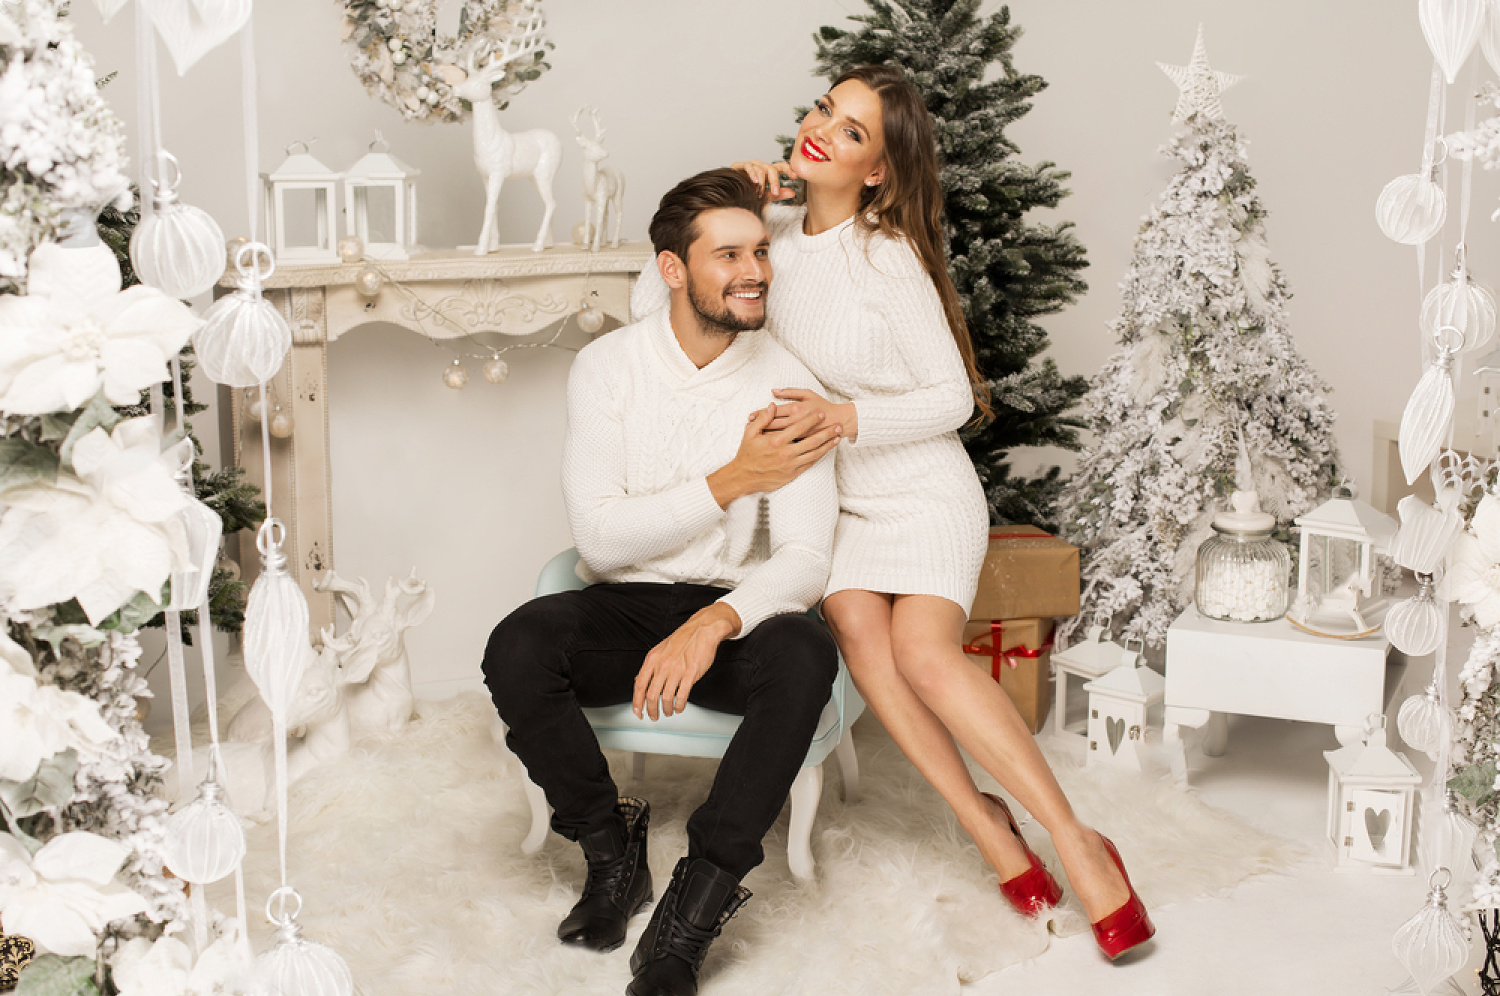 Whether it's because of the cosy winters, sparkling streets, or the festive cheer, couples like getting engaged over the holidays!